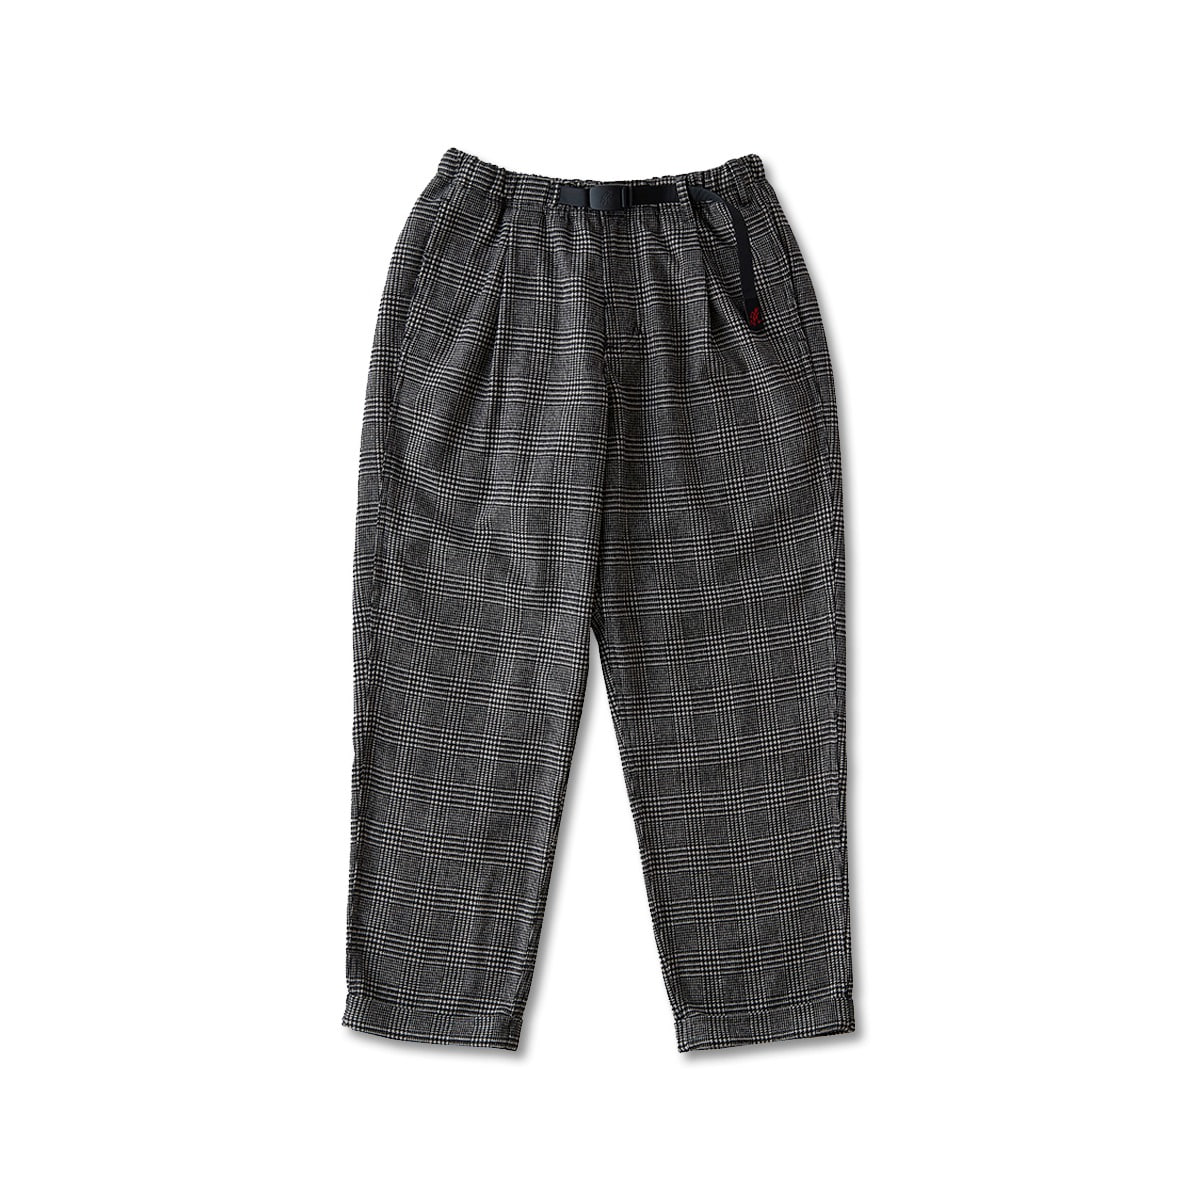 [GRAMICCI] WOOL BLEND TUCK TAPERED PANTS 'HOUNDSTOOTH PATTERN'